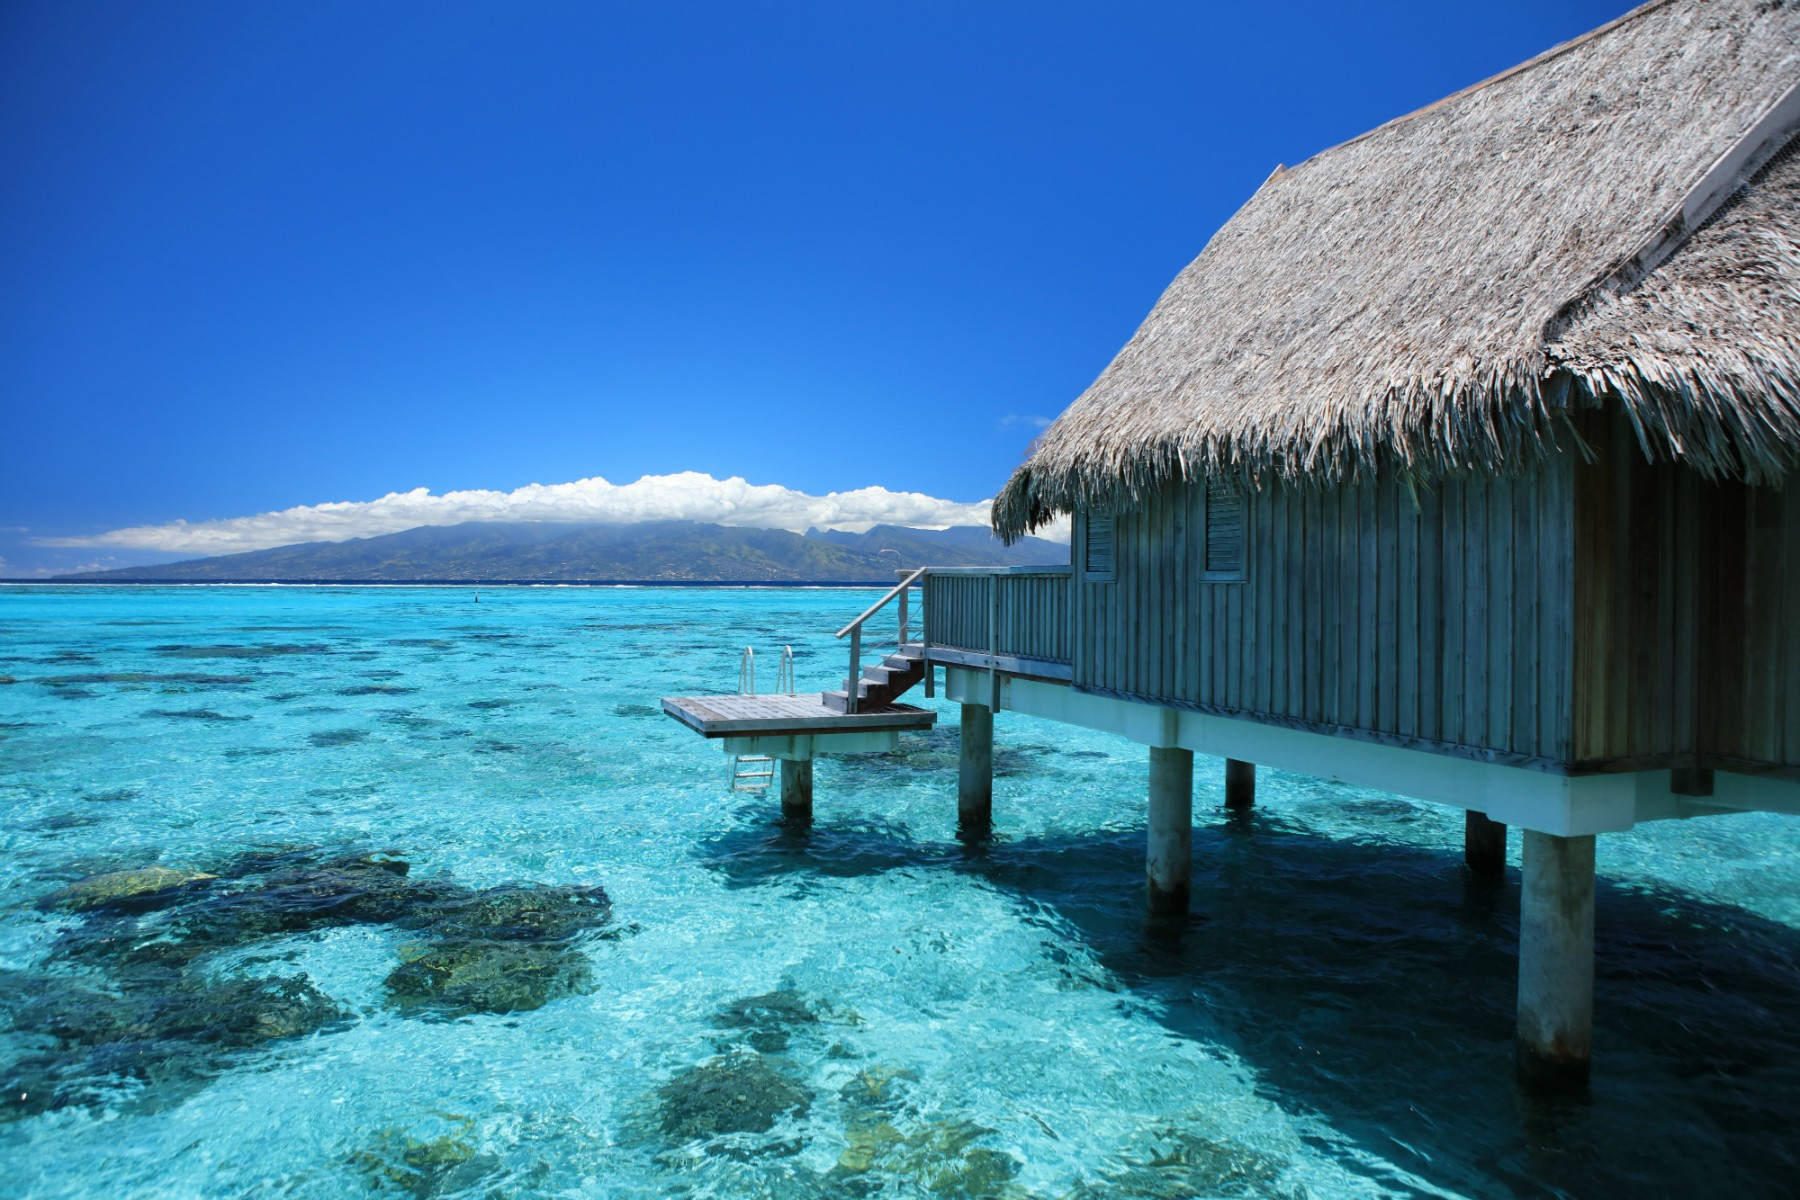 sofitel-moorea-honeymoon-list-20191